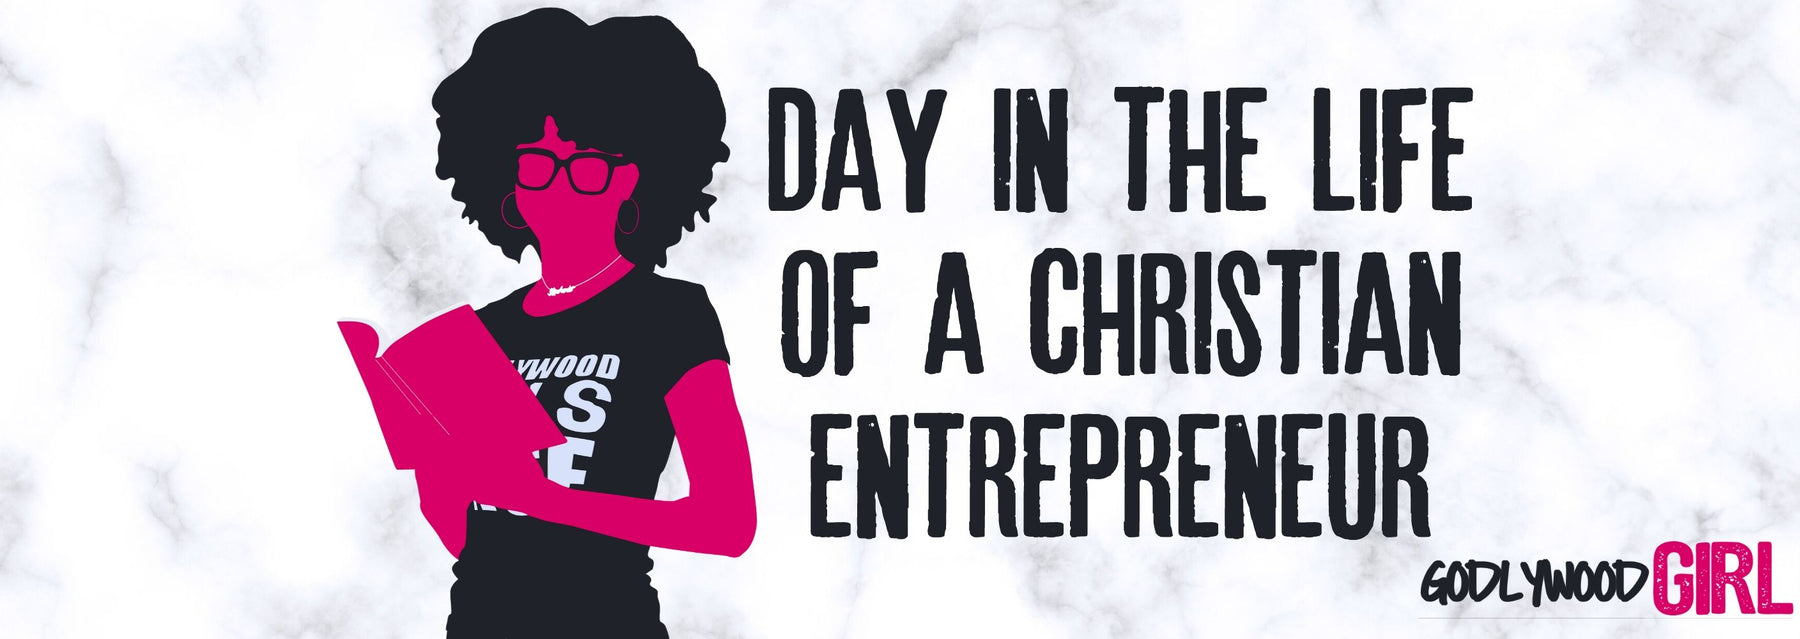 ENTREPRENEUR LIFE VLOG | DAY IN A LIFE OF A CHRISTIAN ENTREPRENEUR | (Godlywood Girl Vlog #097)